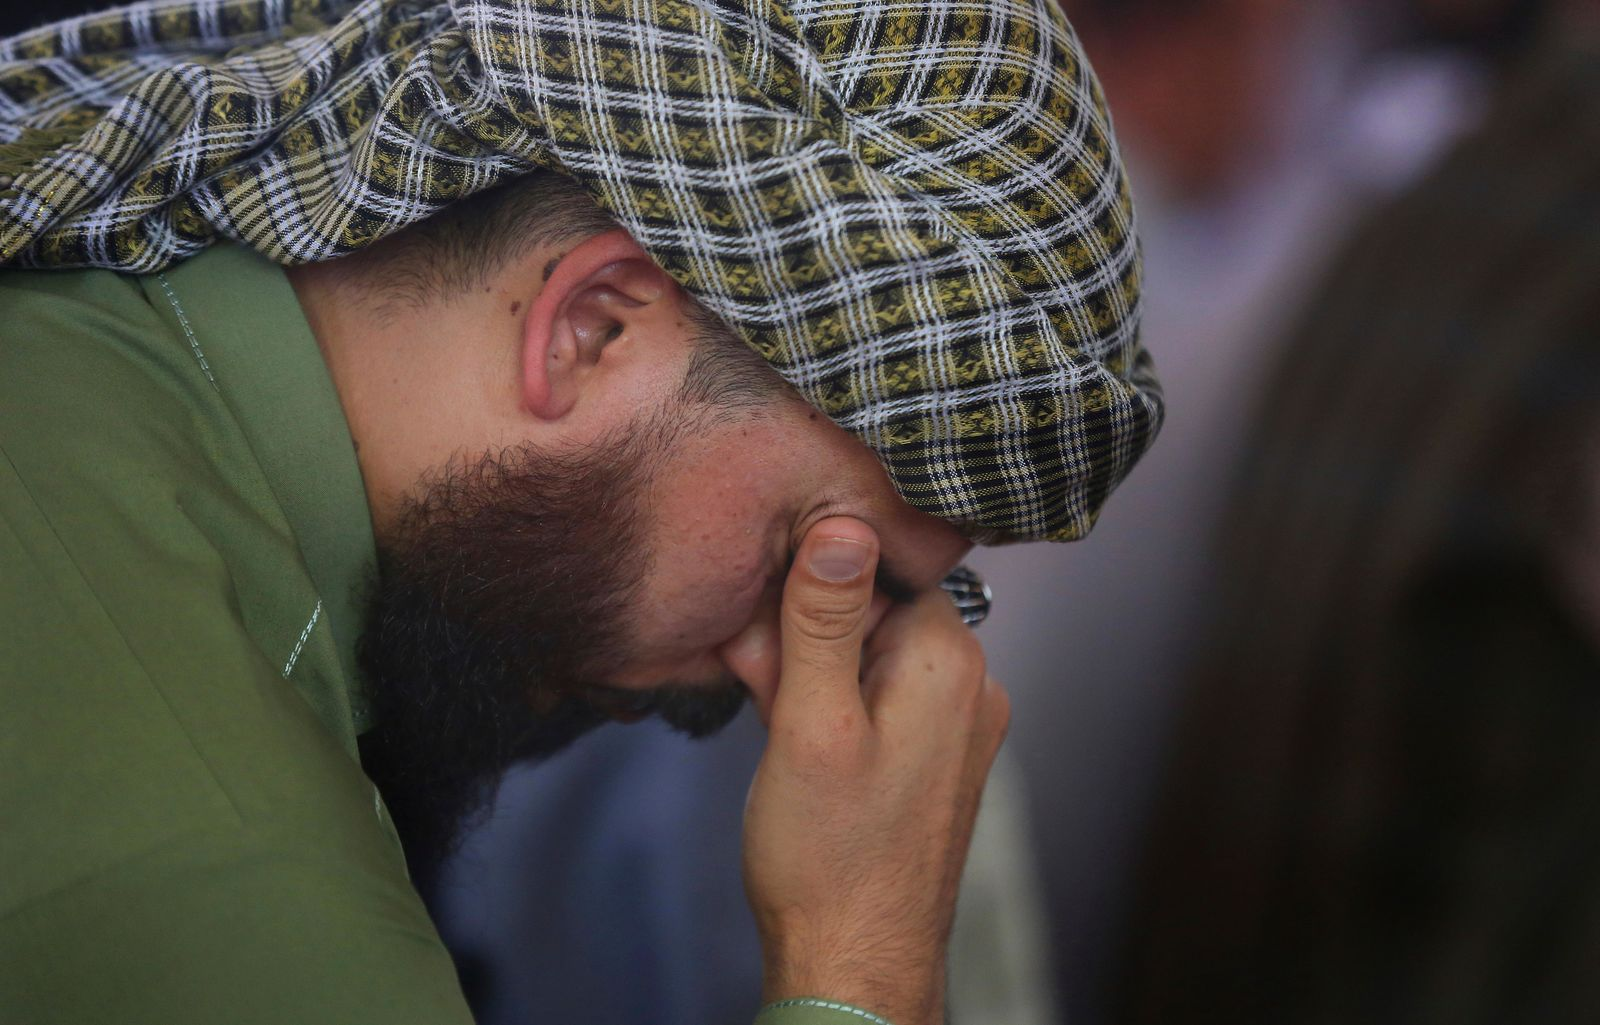 A man mourns for victims of the Dubai City wedding hall bombing during a memorial service at a mosque in Kabul, Afghanistan, Tuesday, Aug. 20, 2019. Hundreds of people have gathered in mosques in Afghanistan's capital for memorials for scores of people killed in a horrific suicide bombing at a Kabul wedding over the weekend. (AP Photo/Rafiq Maqbool)